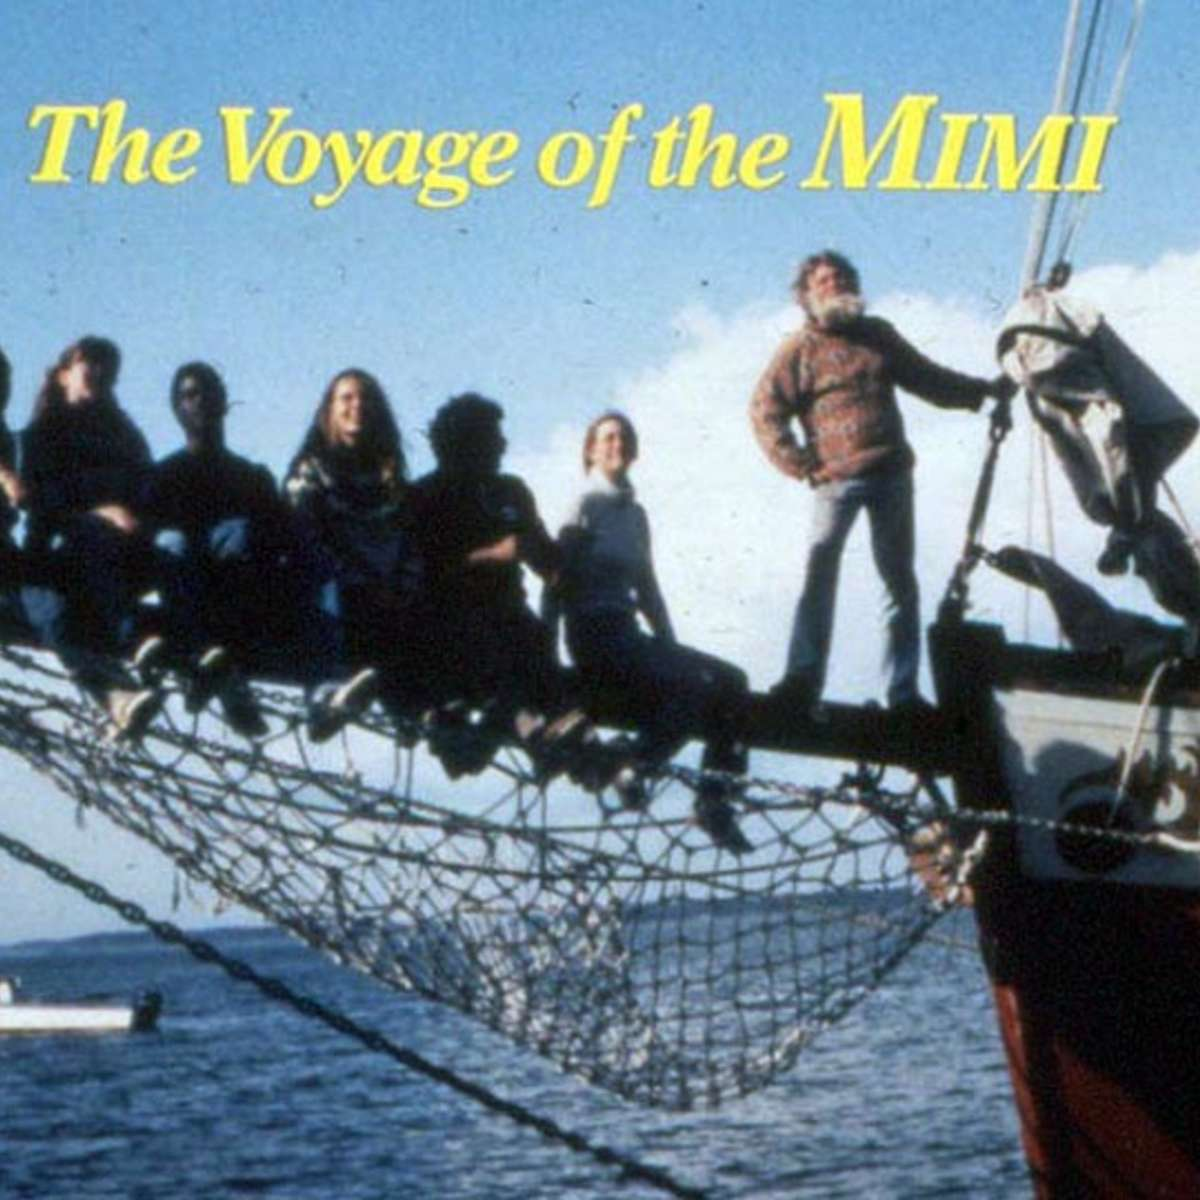 voyage_of_the_mimi_pbs_01.jpg